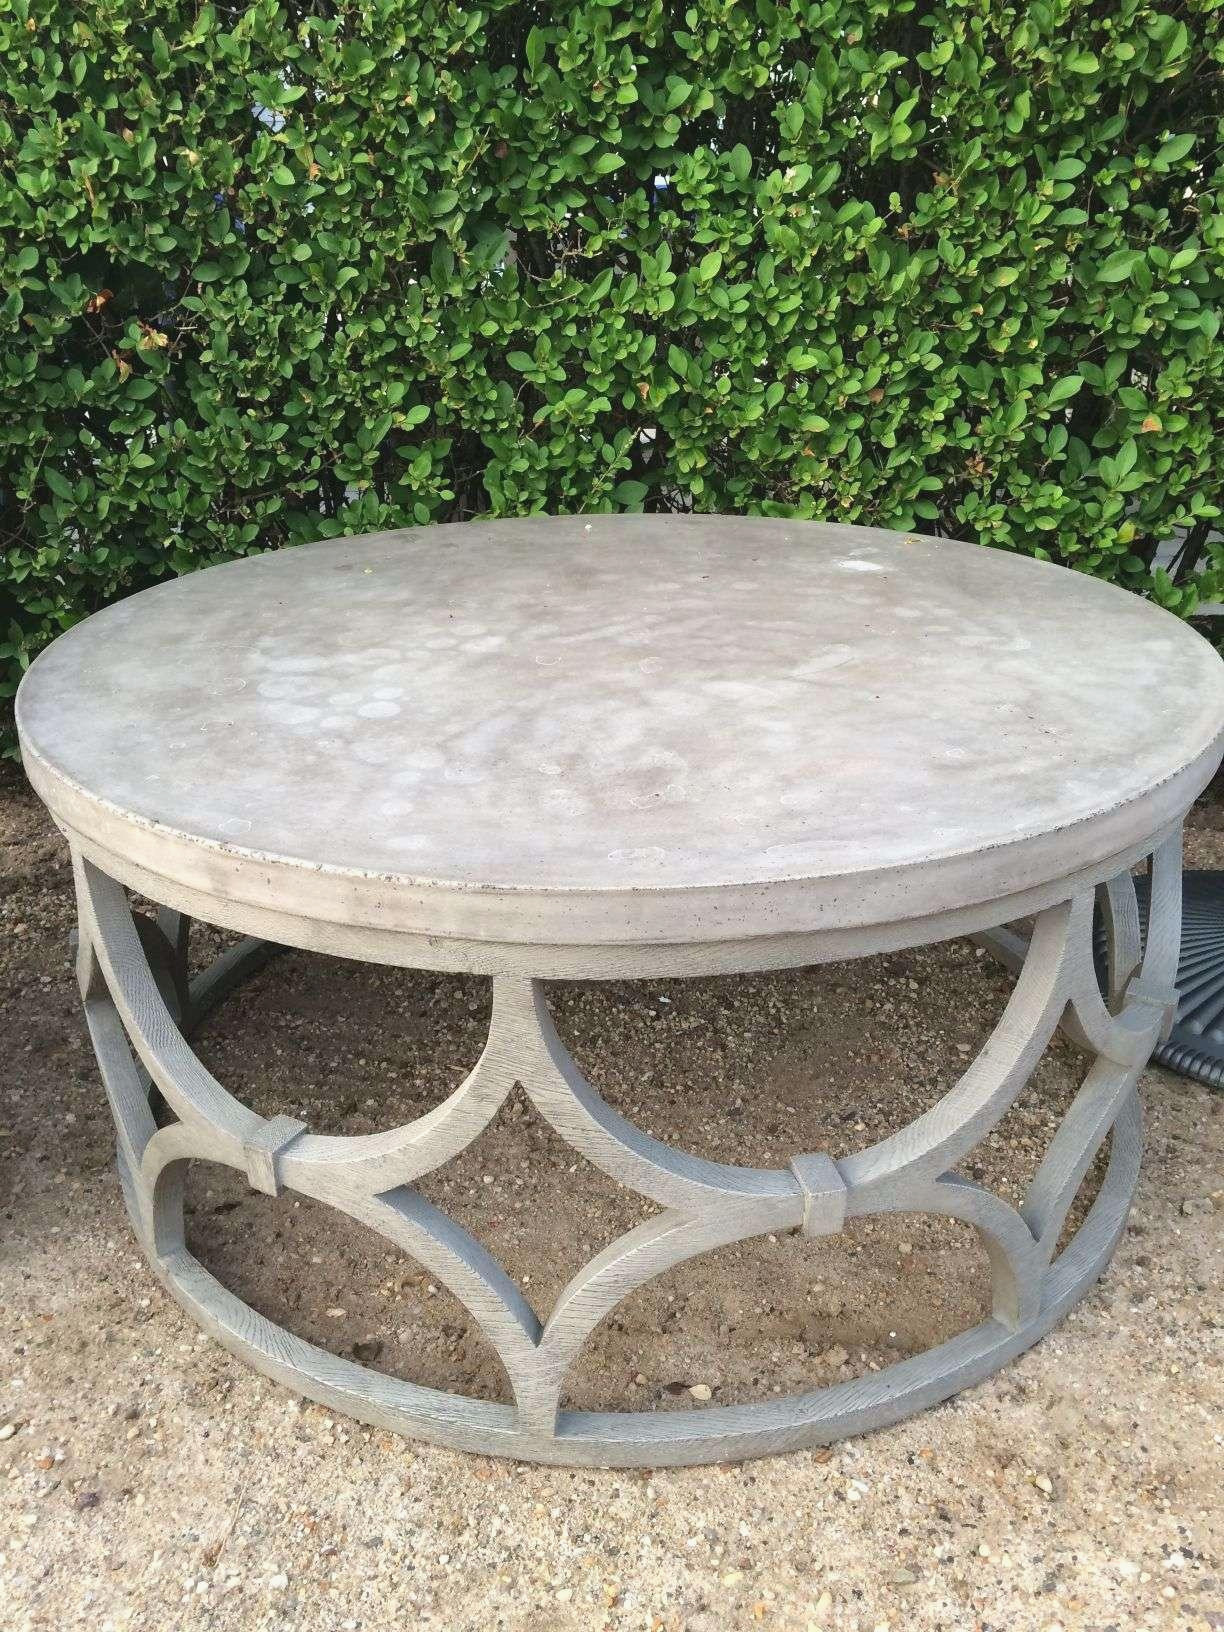 best wood drum coffee table gallery fresh lovely round metal accent pier one candles navy bedside silver target faux marble end legs mirrored desk patio side narrow oval placemats